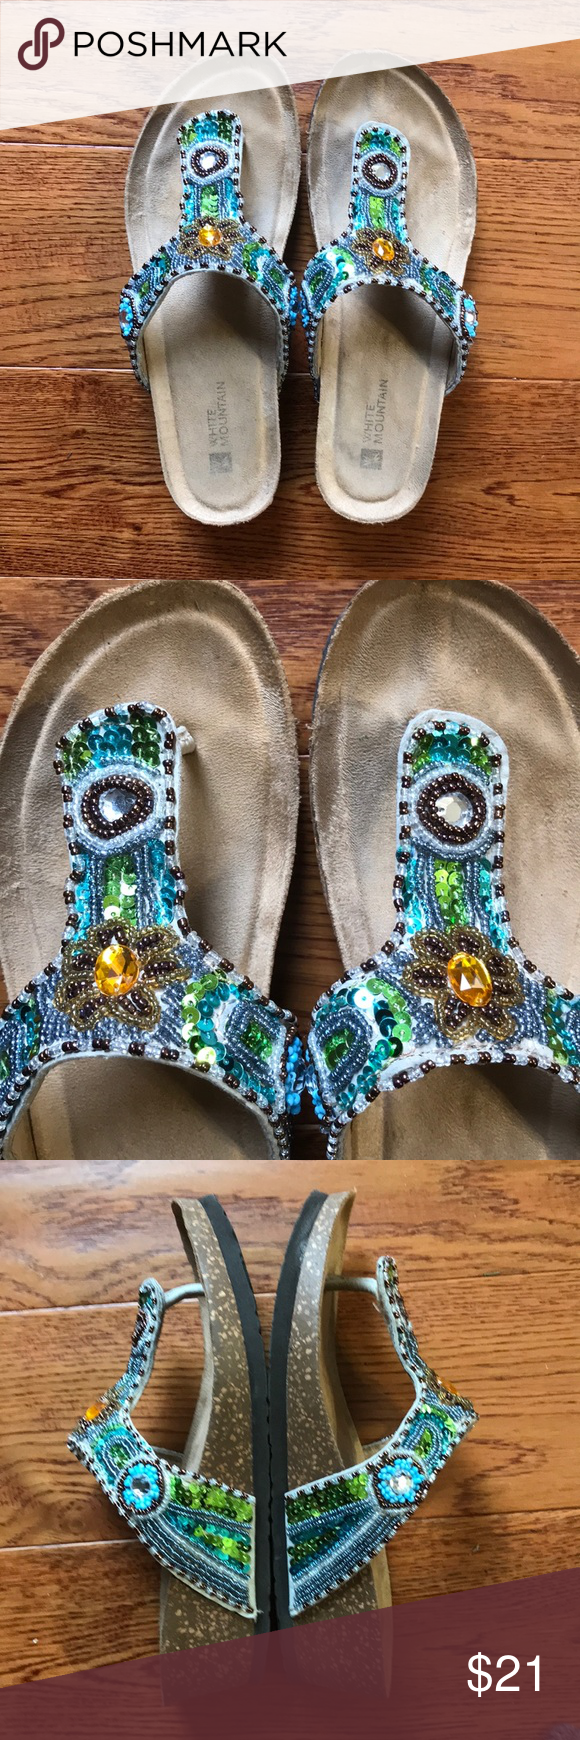 White Mountain Bluejay beaded sandals